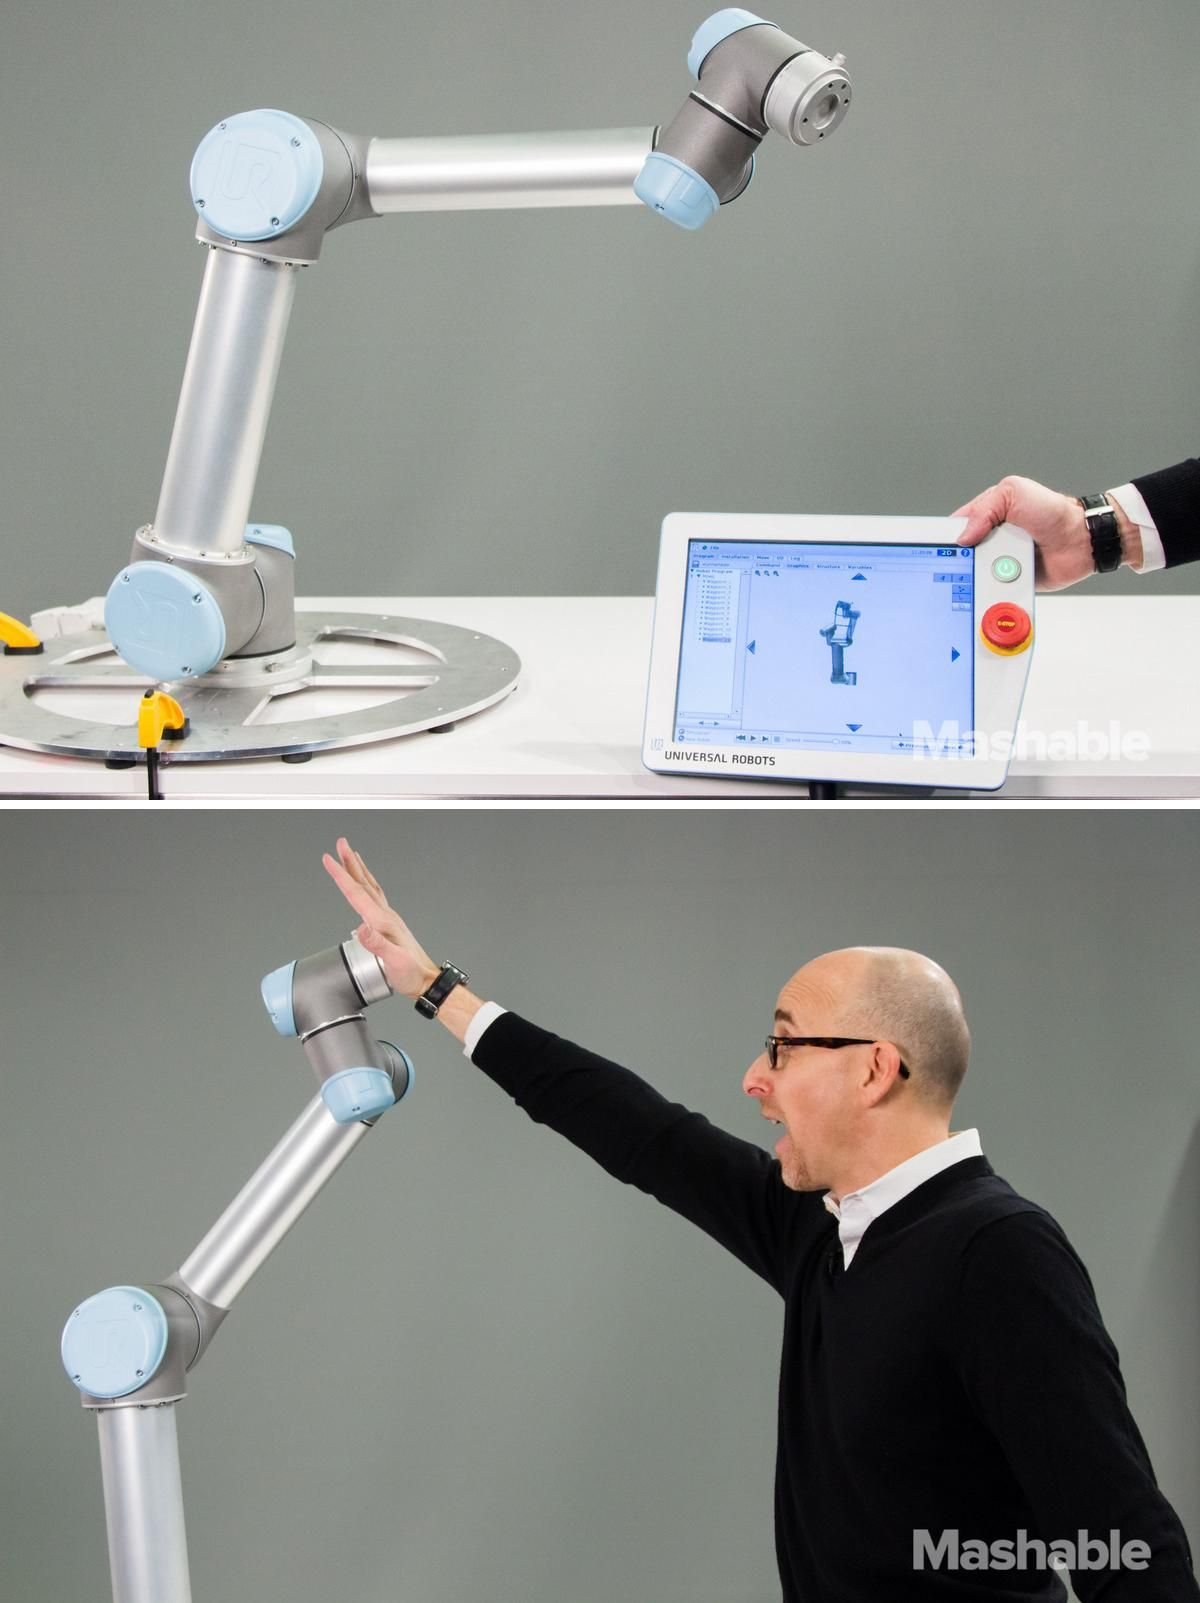 Robot Arm performs epic high five | Tech & Gadgets